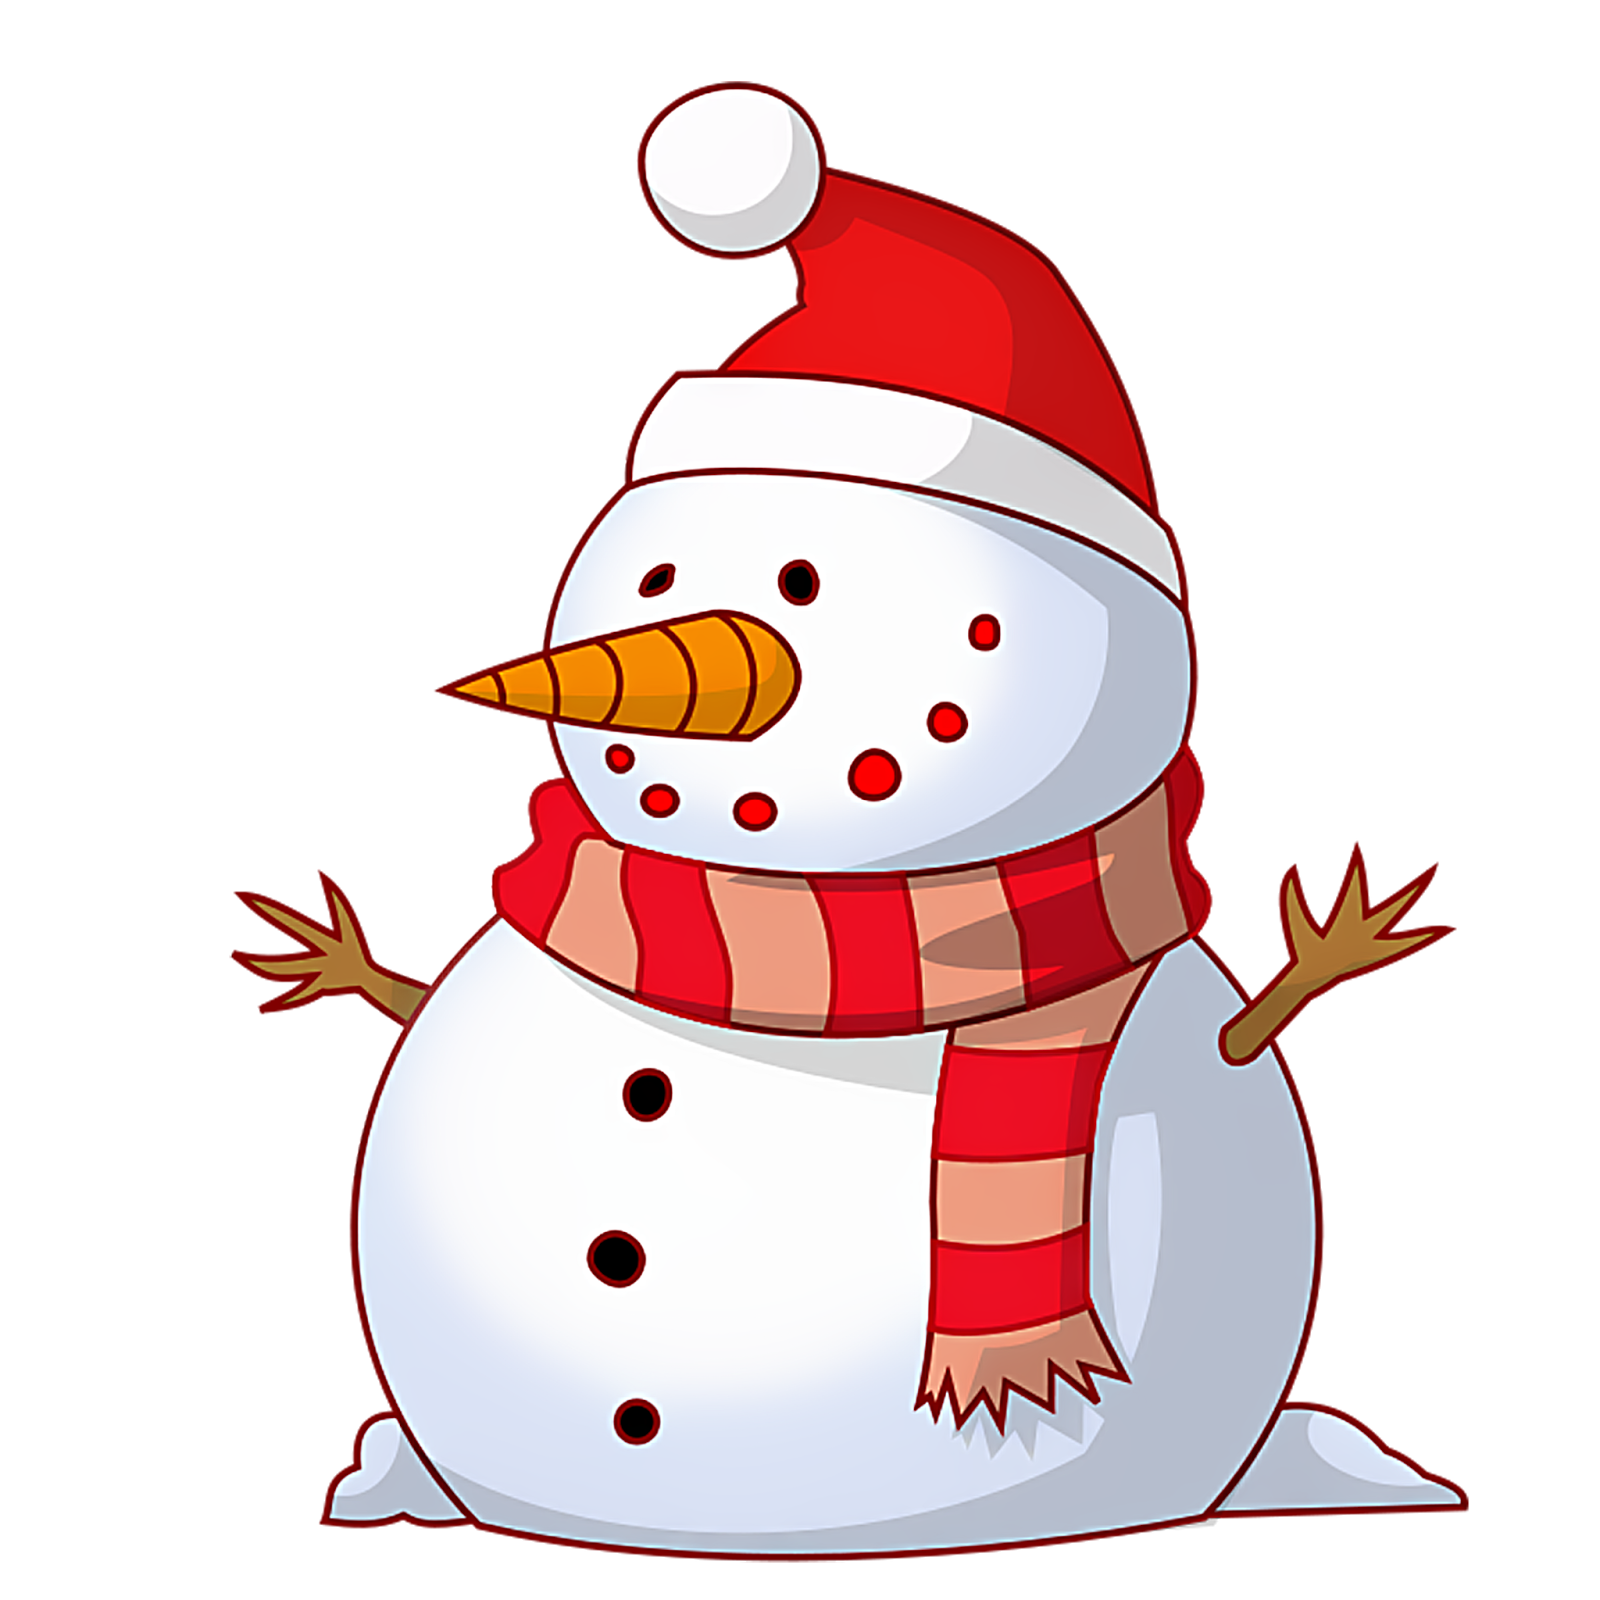 jpg royalty free library Gif snowman images clip. Canes clipart zentangle.